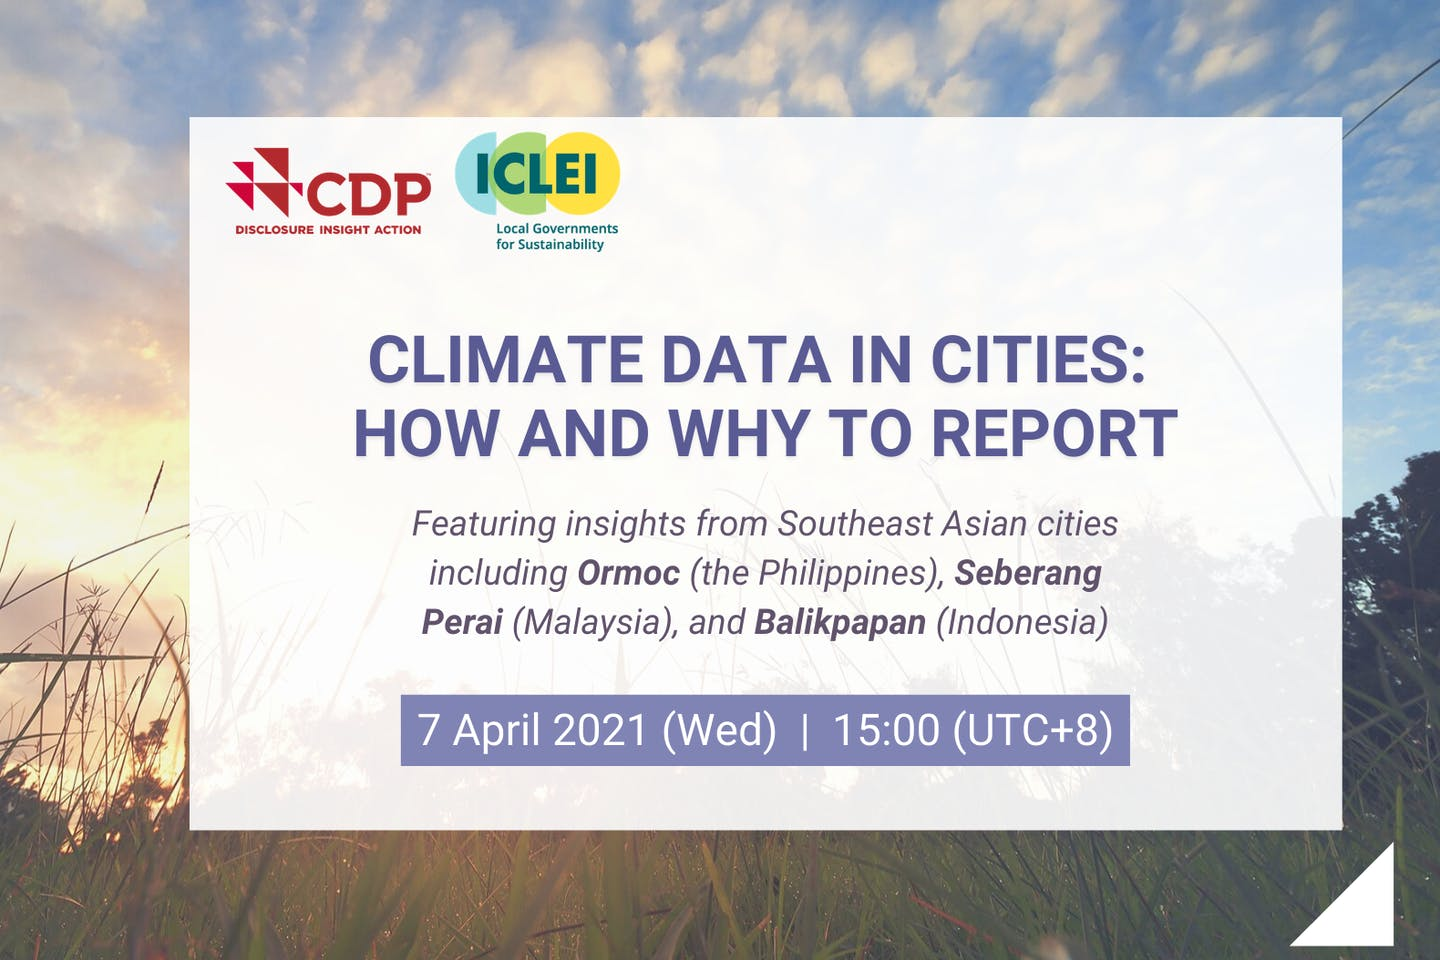 [Webinar] Climate data in cities: How and why to report